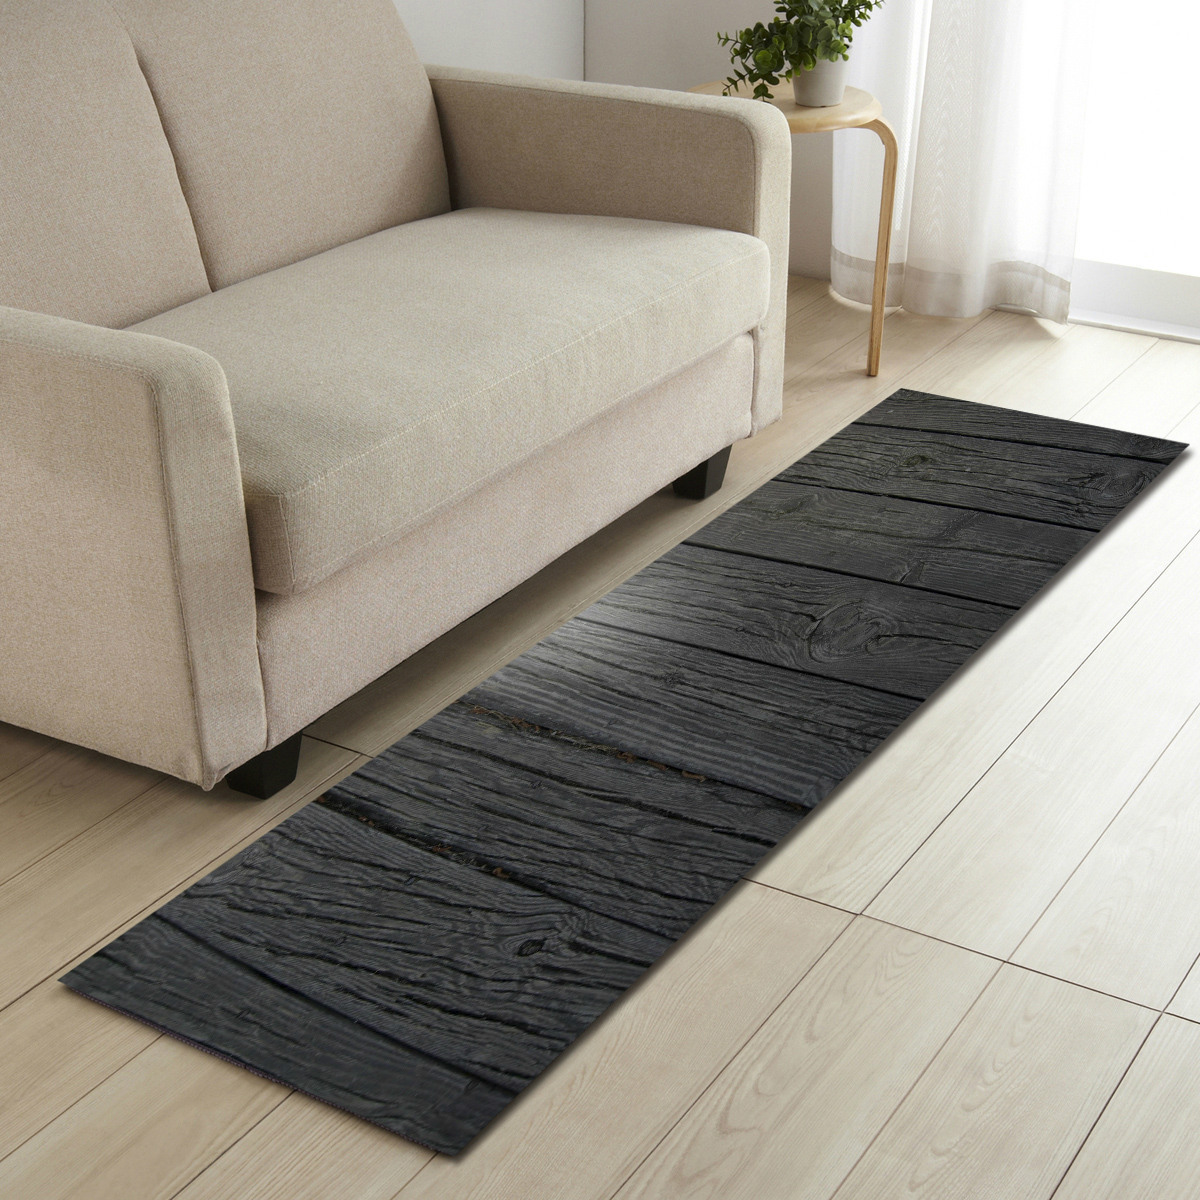 Full Size of Teppich Küche Material Teppich Küche 180 Teppich Küche Conforama Spritzschutz Teppich Küche Küche Teppich Küche